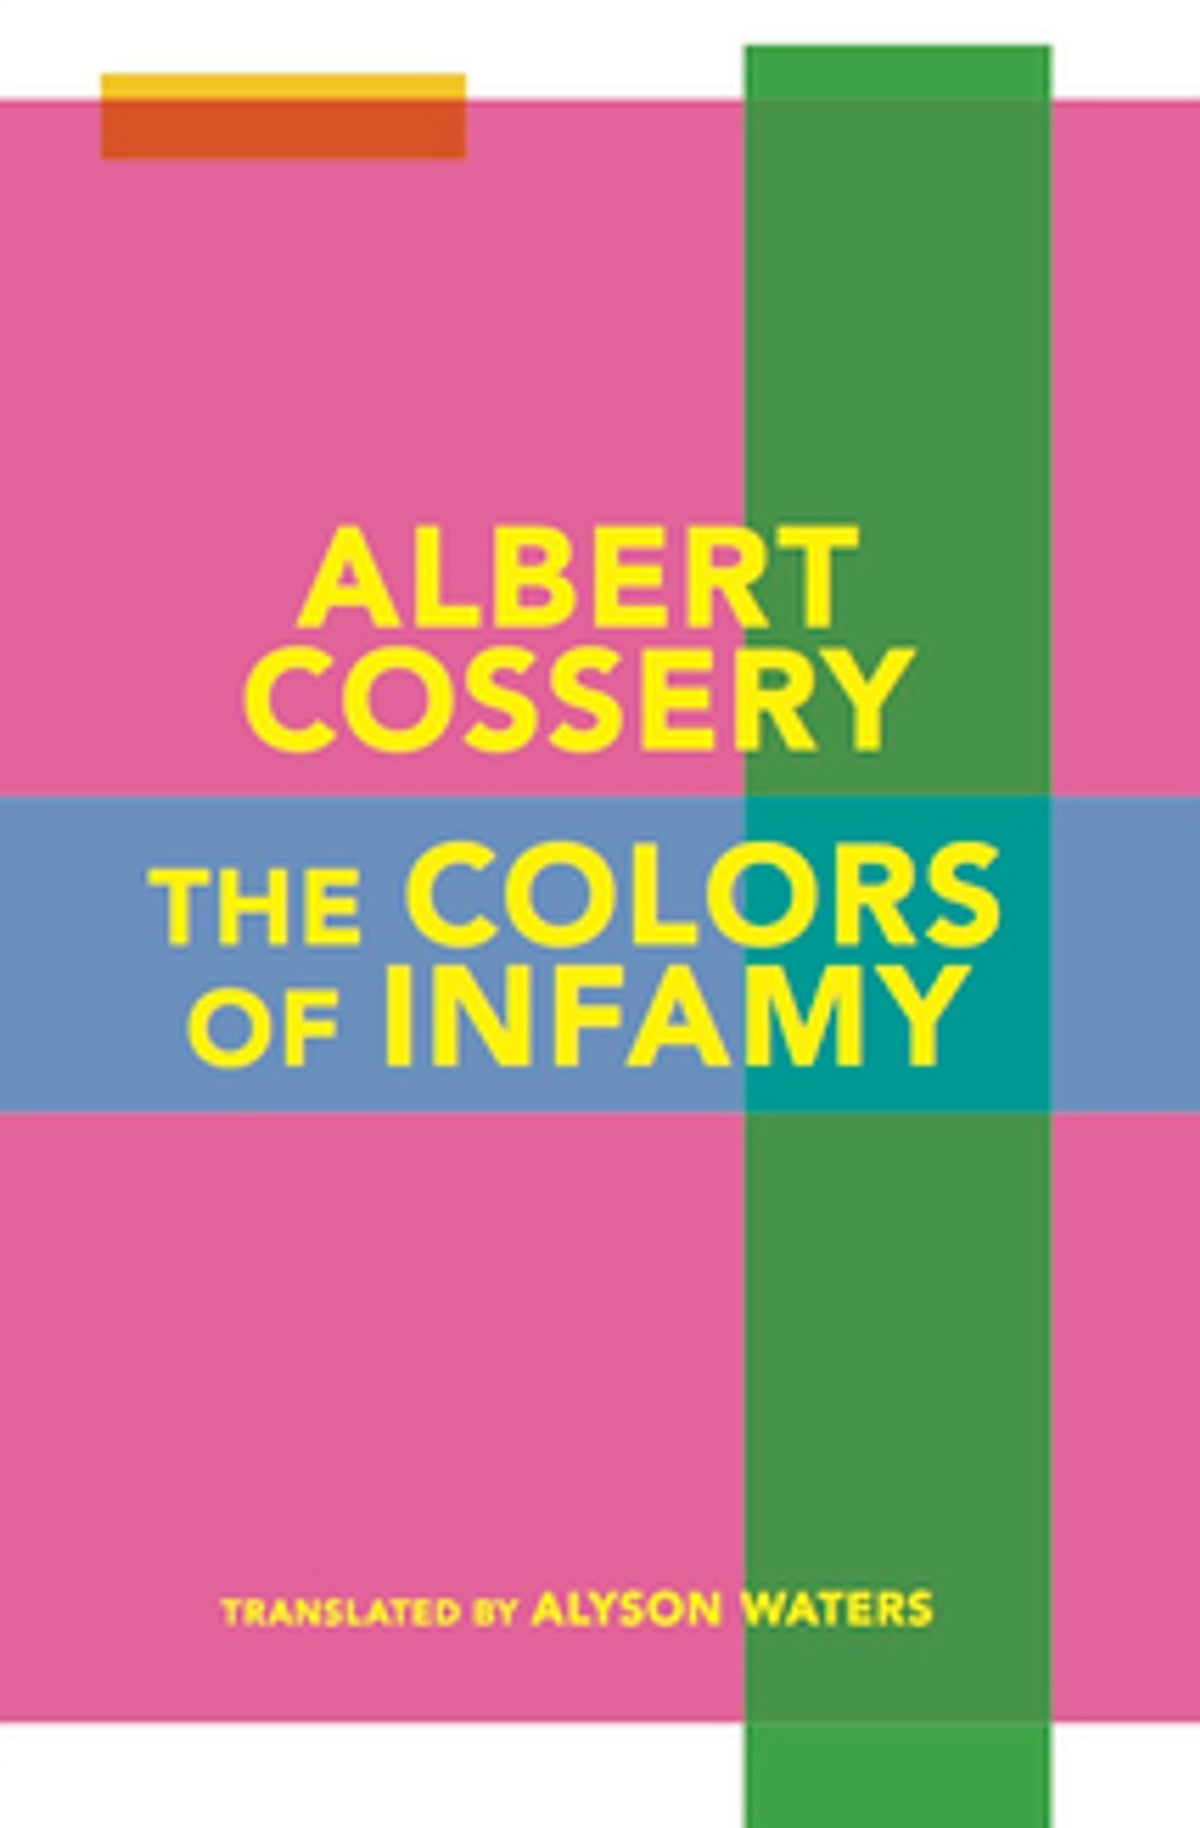 The Colors of Infamy eBook by Albert Cossery - 9780811221252 ...